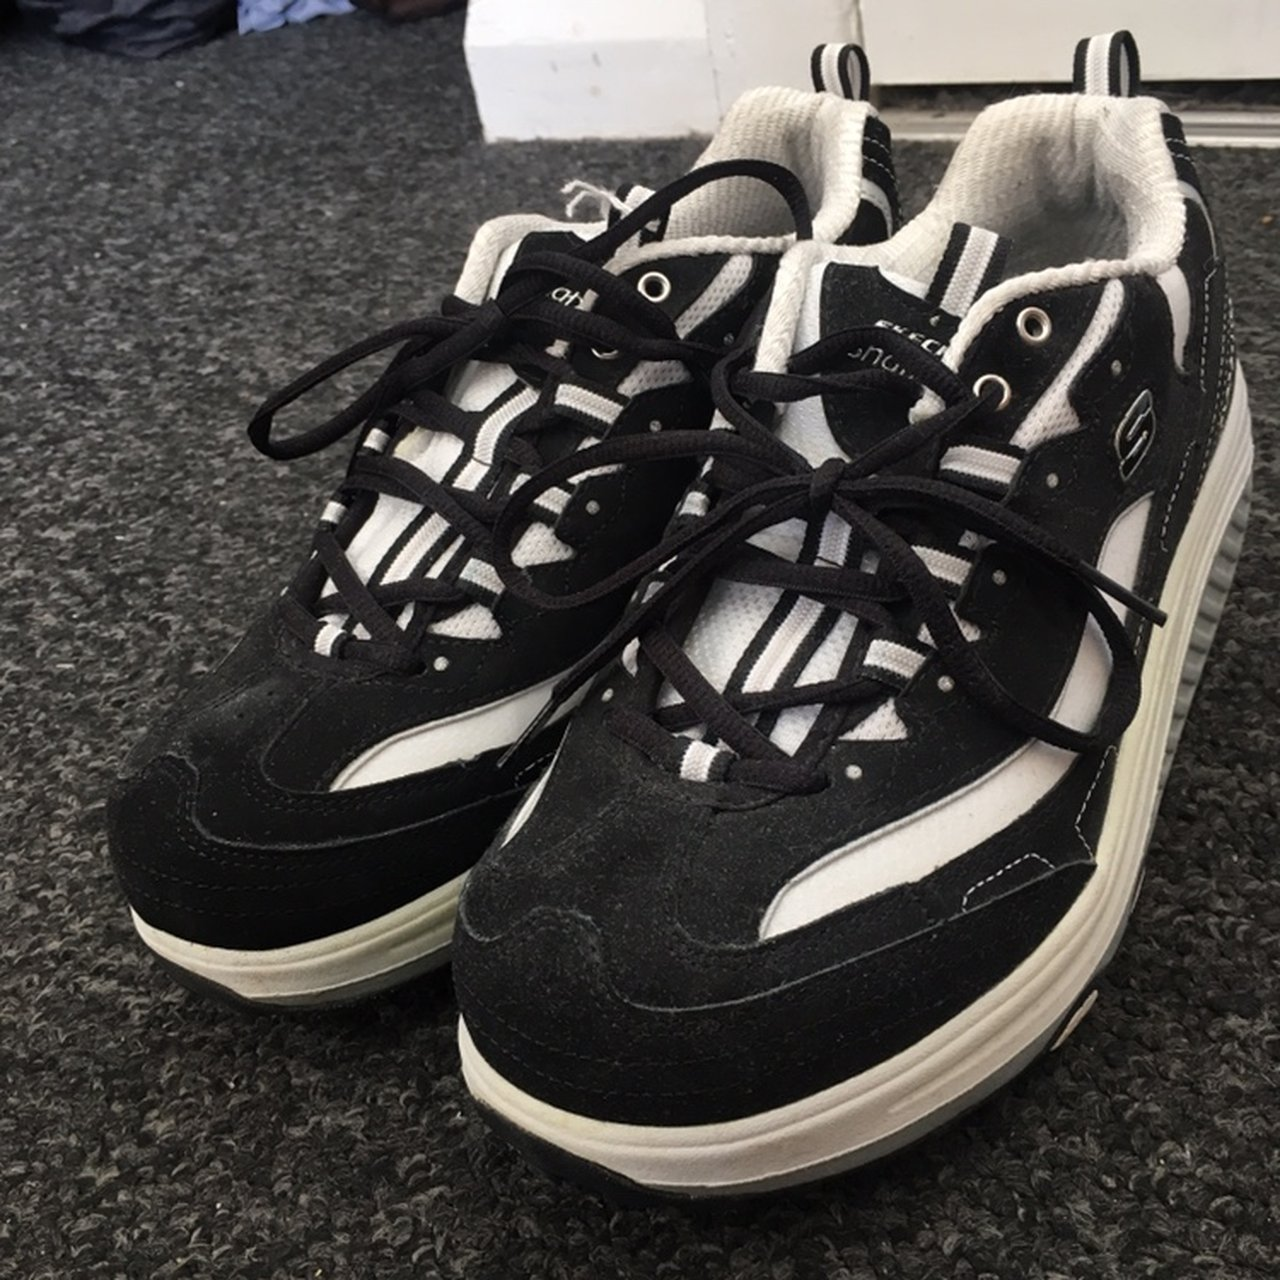 c1ff5adc @emilydowsett11. 14 days ago. Brighton, United Kingdom. Brand new never  worn. Chunky Vintage skechers shape ups with platform. Black ...